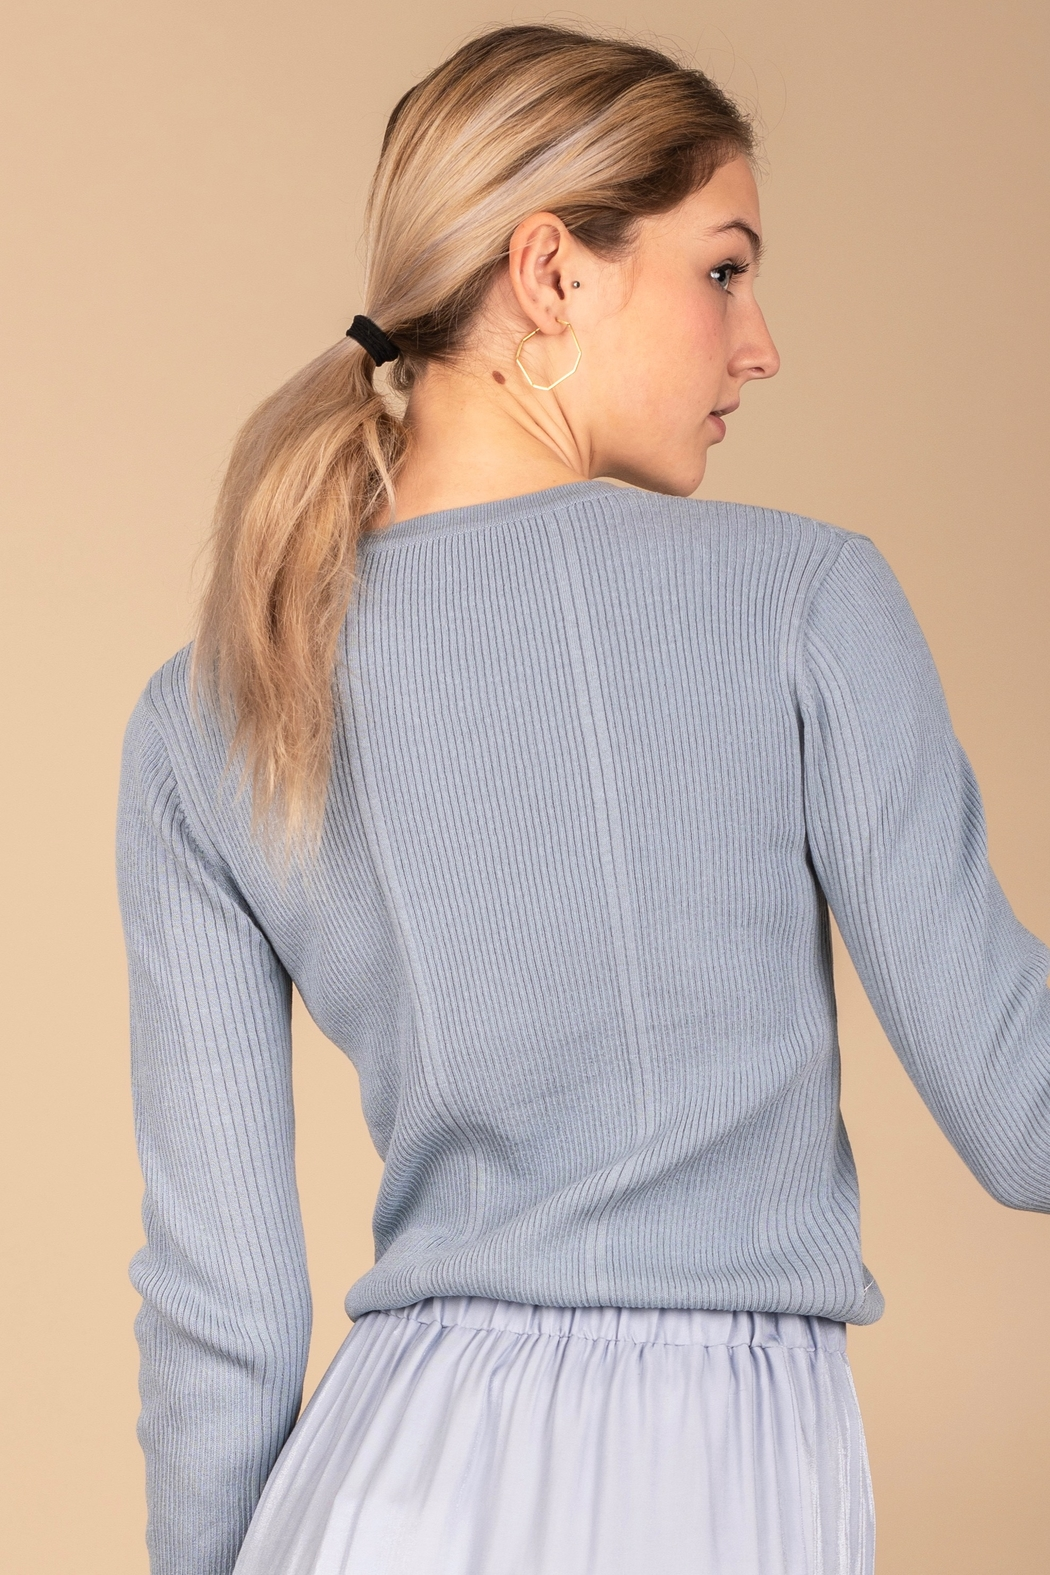 Meli by FAME Mixed Ribbed Sweater - Front Full Image